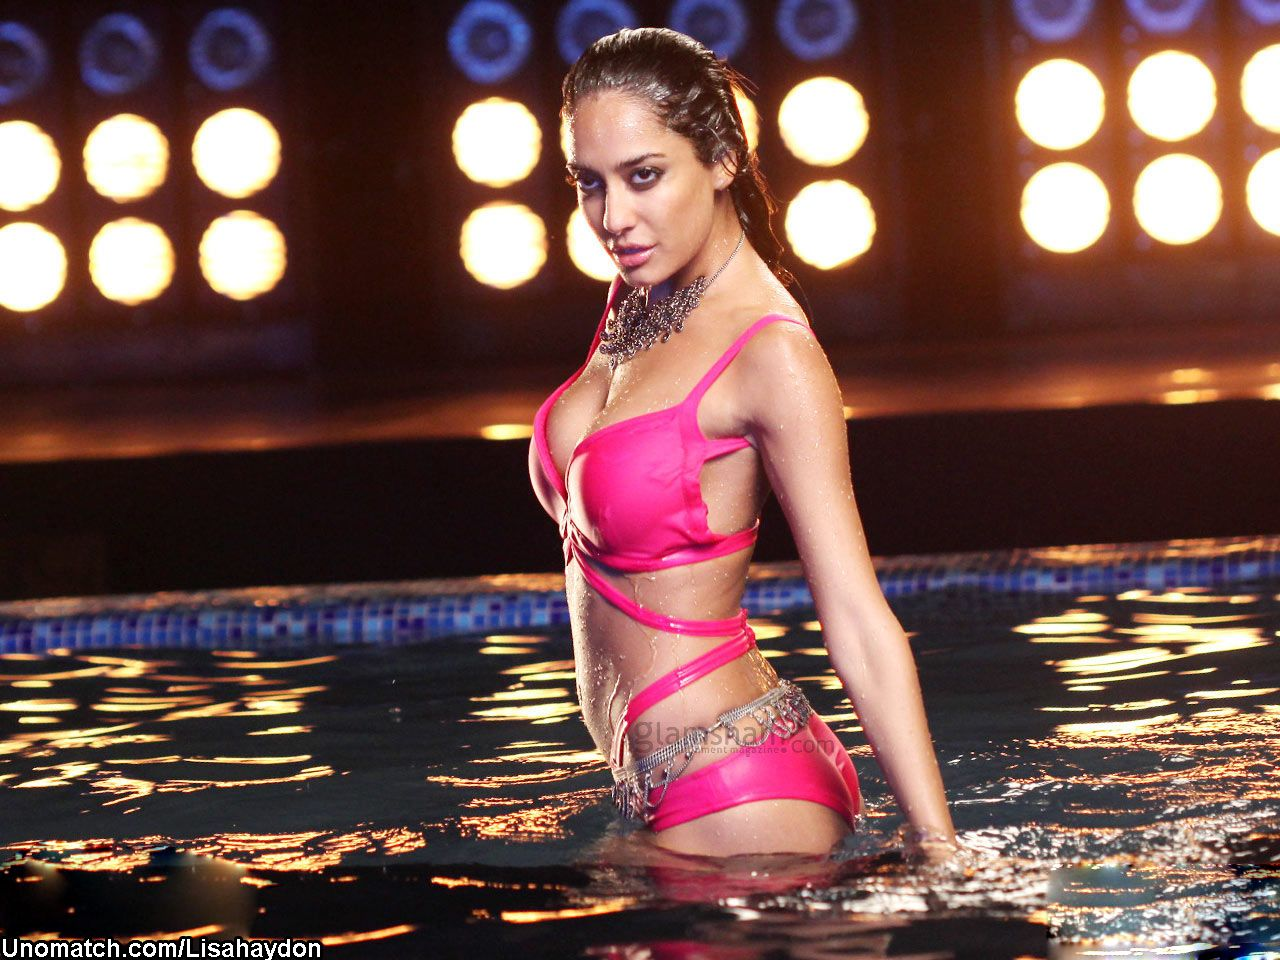 lisa haydon (born elisabeth marie haydon; 17 june 1986) is an indian